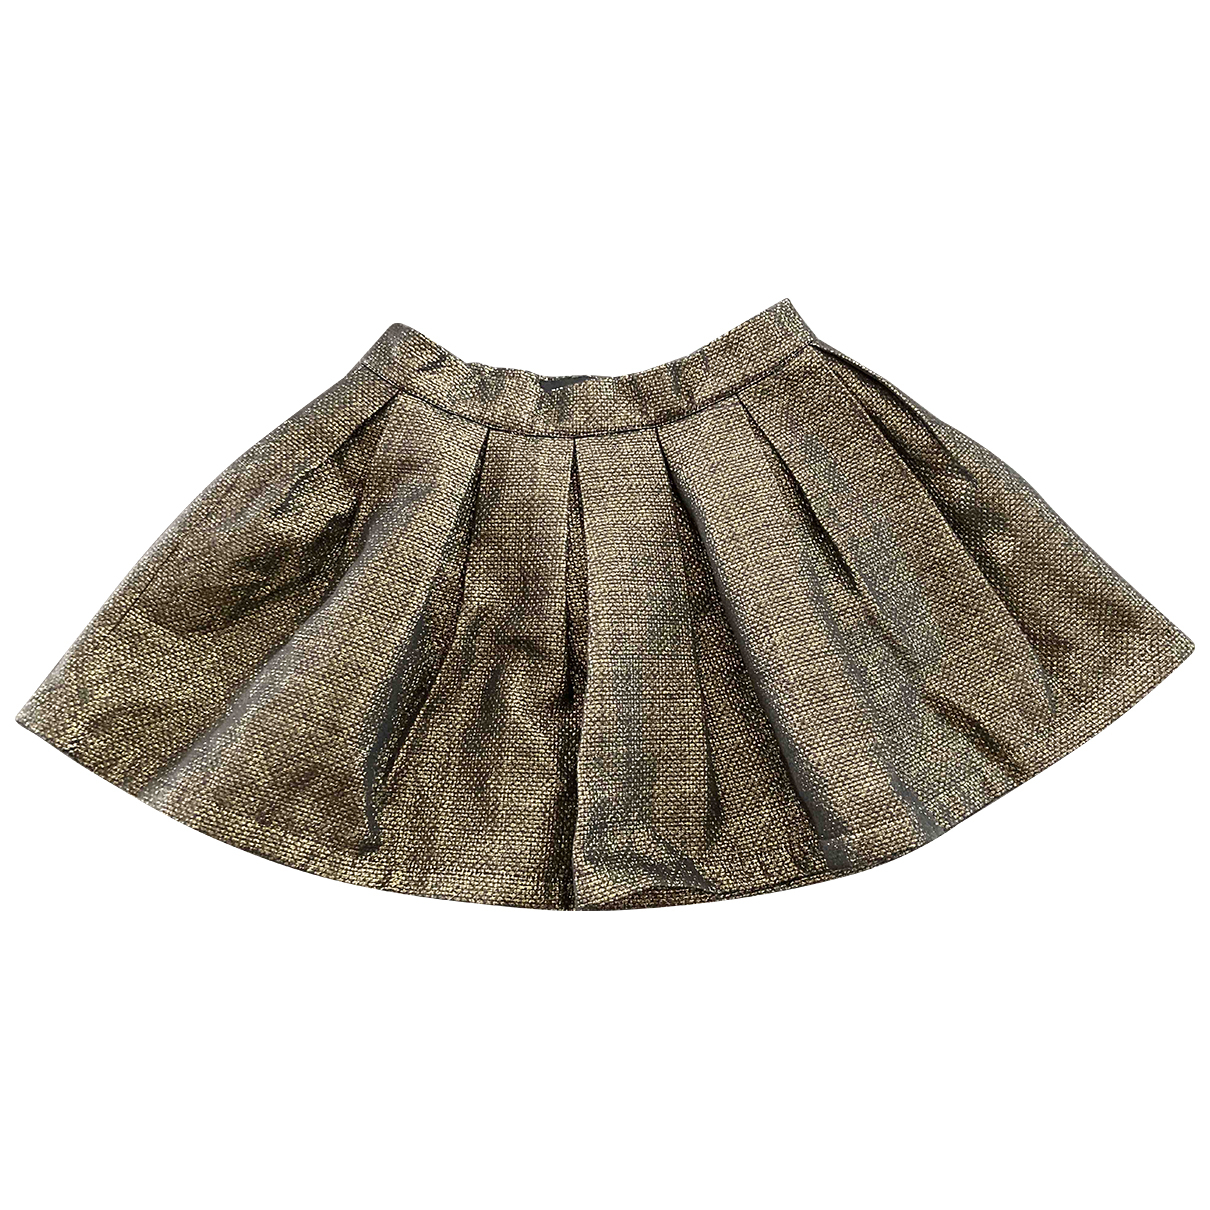 Zadig & Voltaire N Metallic Cotton skirt for Kids 12 years - XS FR